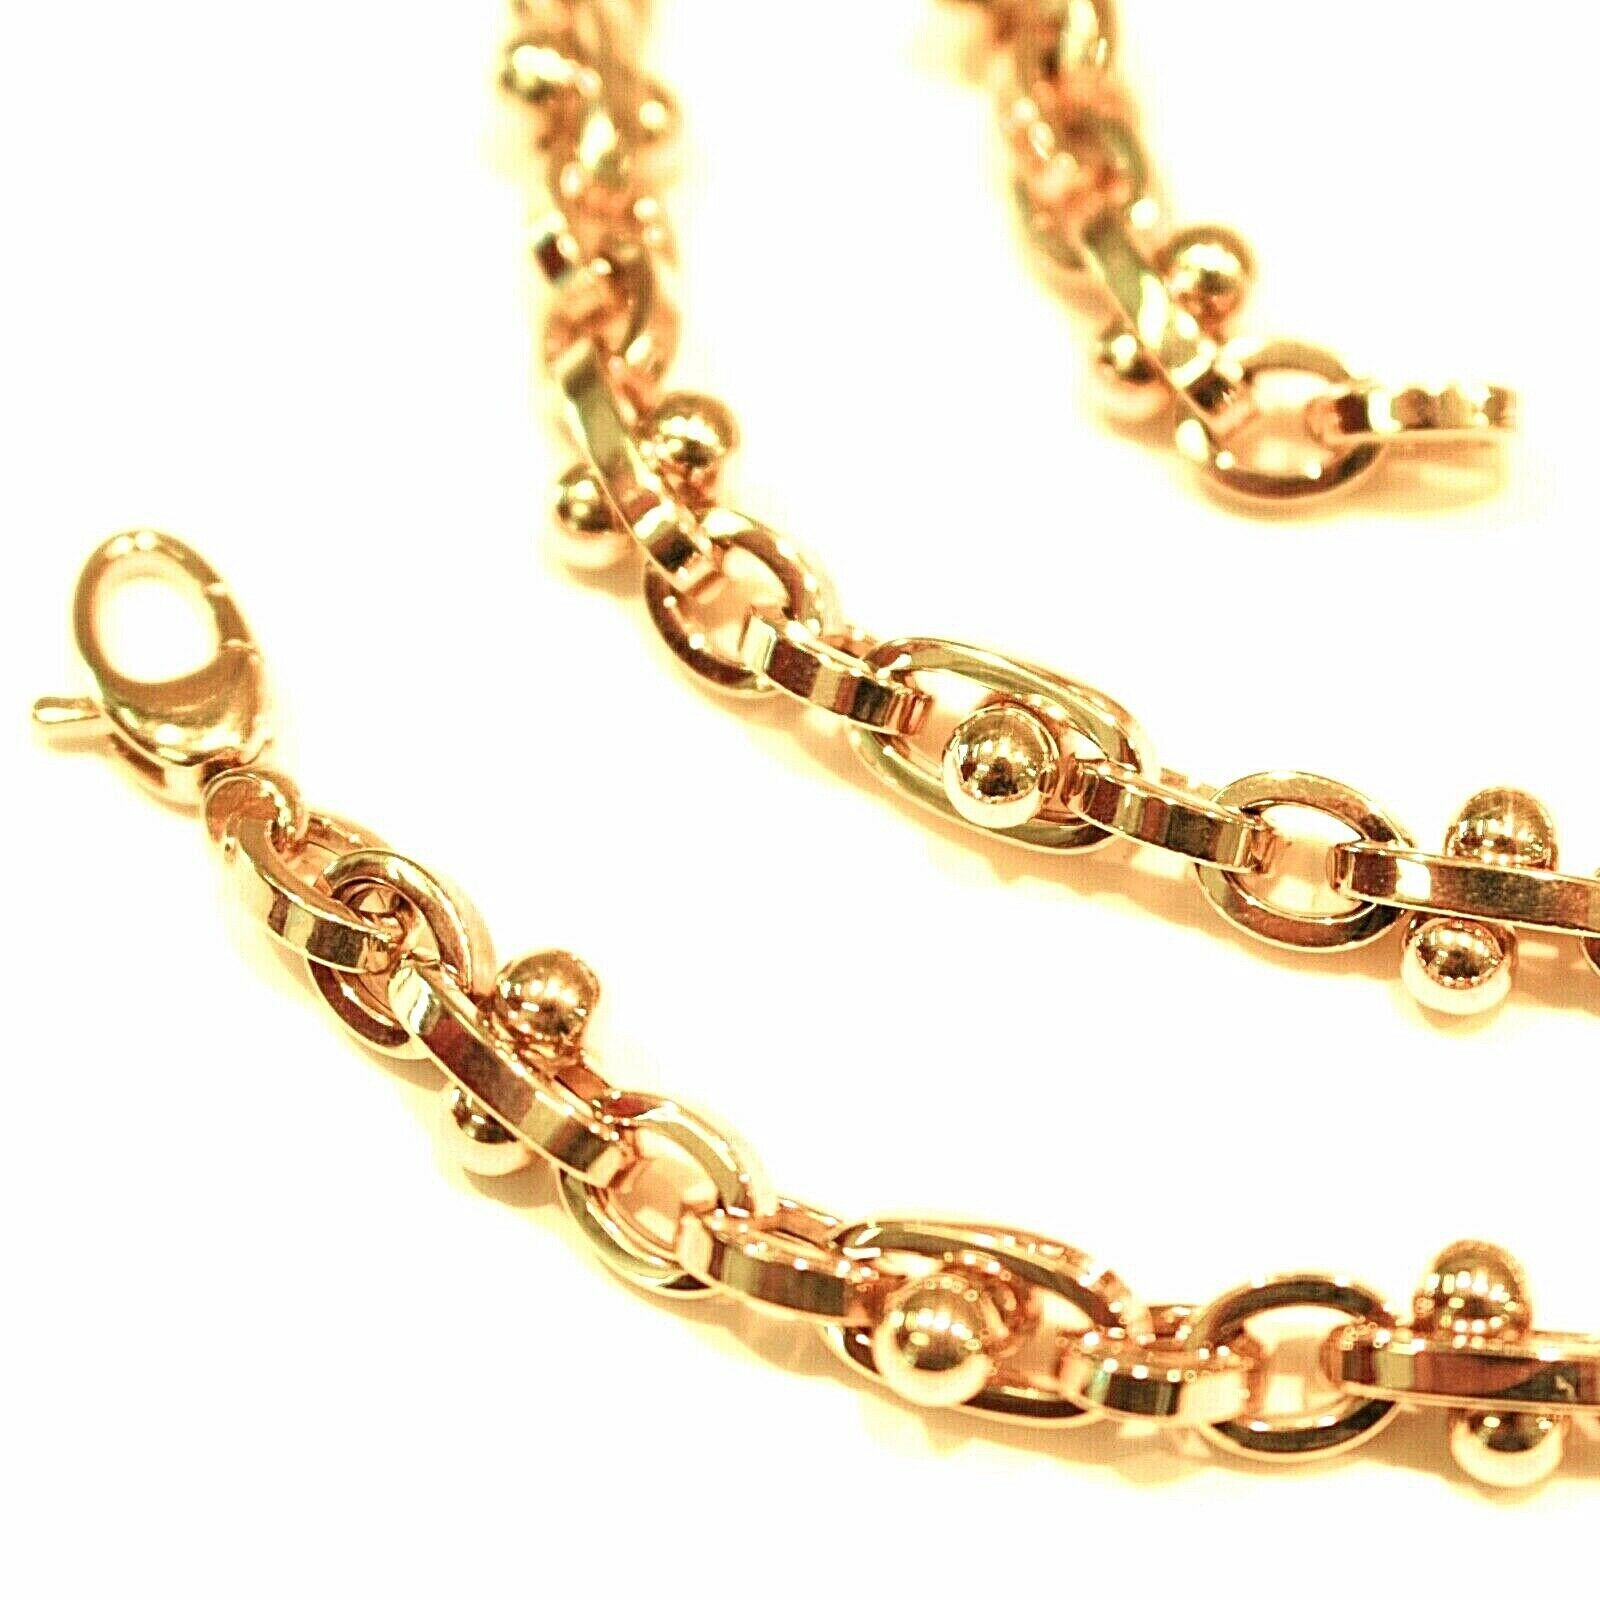 18K YELLOW GOLD CHAIN ALTERNATE OVALS 5 MM, SPHERES, 20 INCHES, ROUNDED NECKLACE